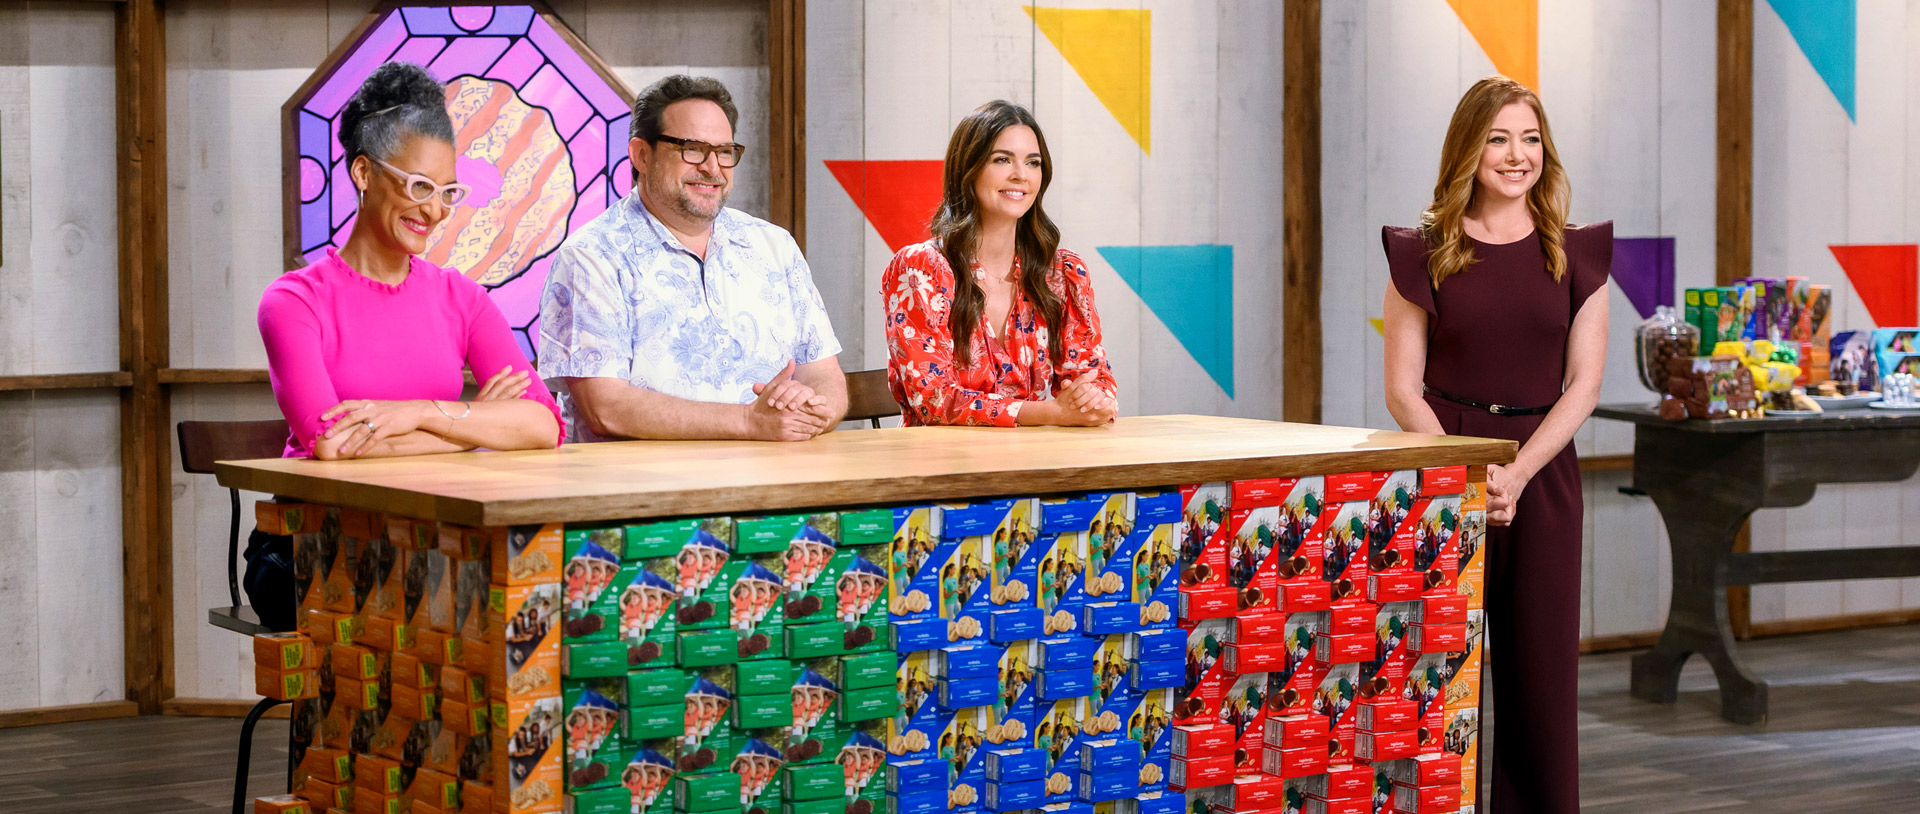 Judges-Carla-Hall,-Nacho-Aguirre,-Katie-Lee-and-host-Alyson-Hannigan-on-Food-Network's-Girl-Scout-Cookie-Championship_1920x815Br